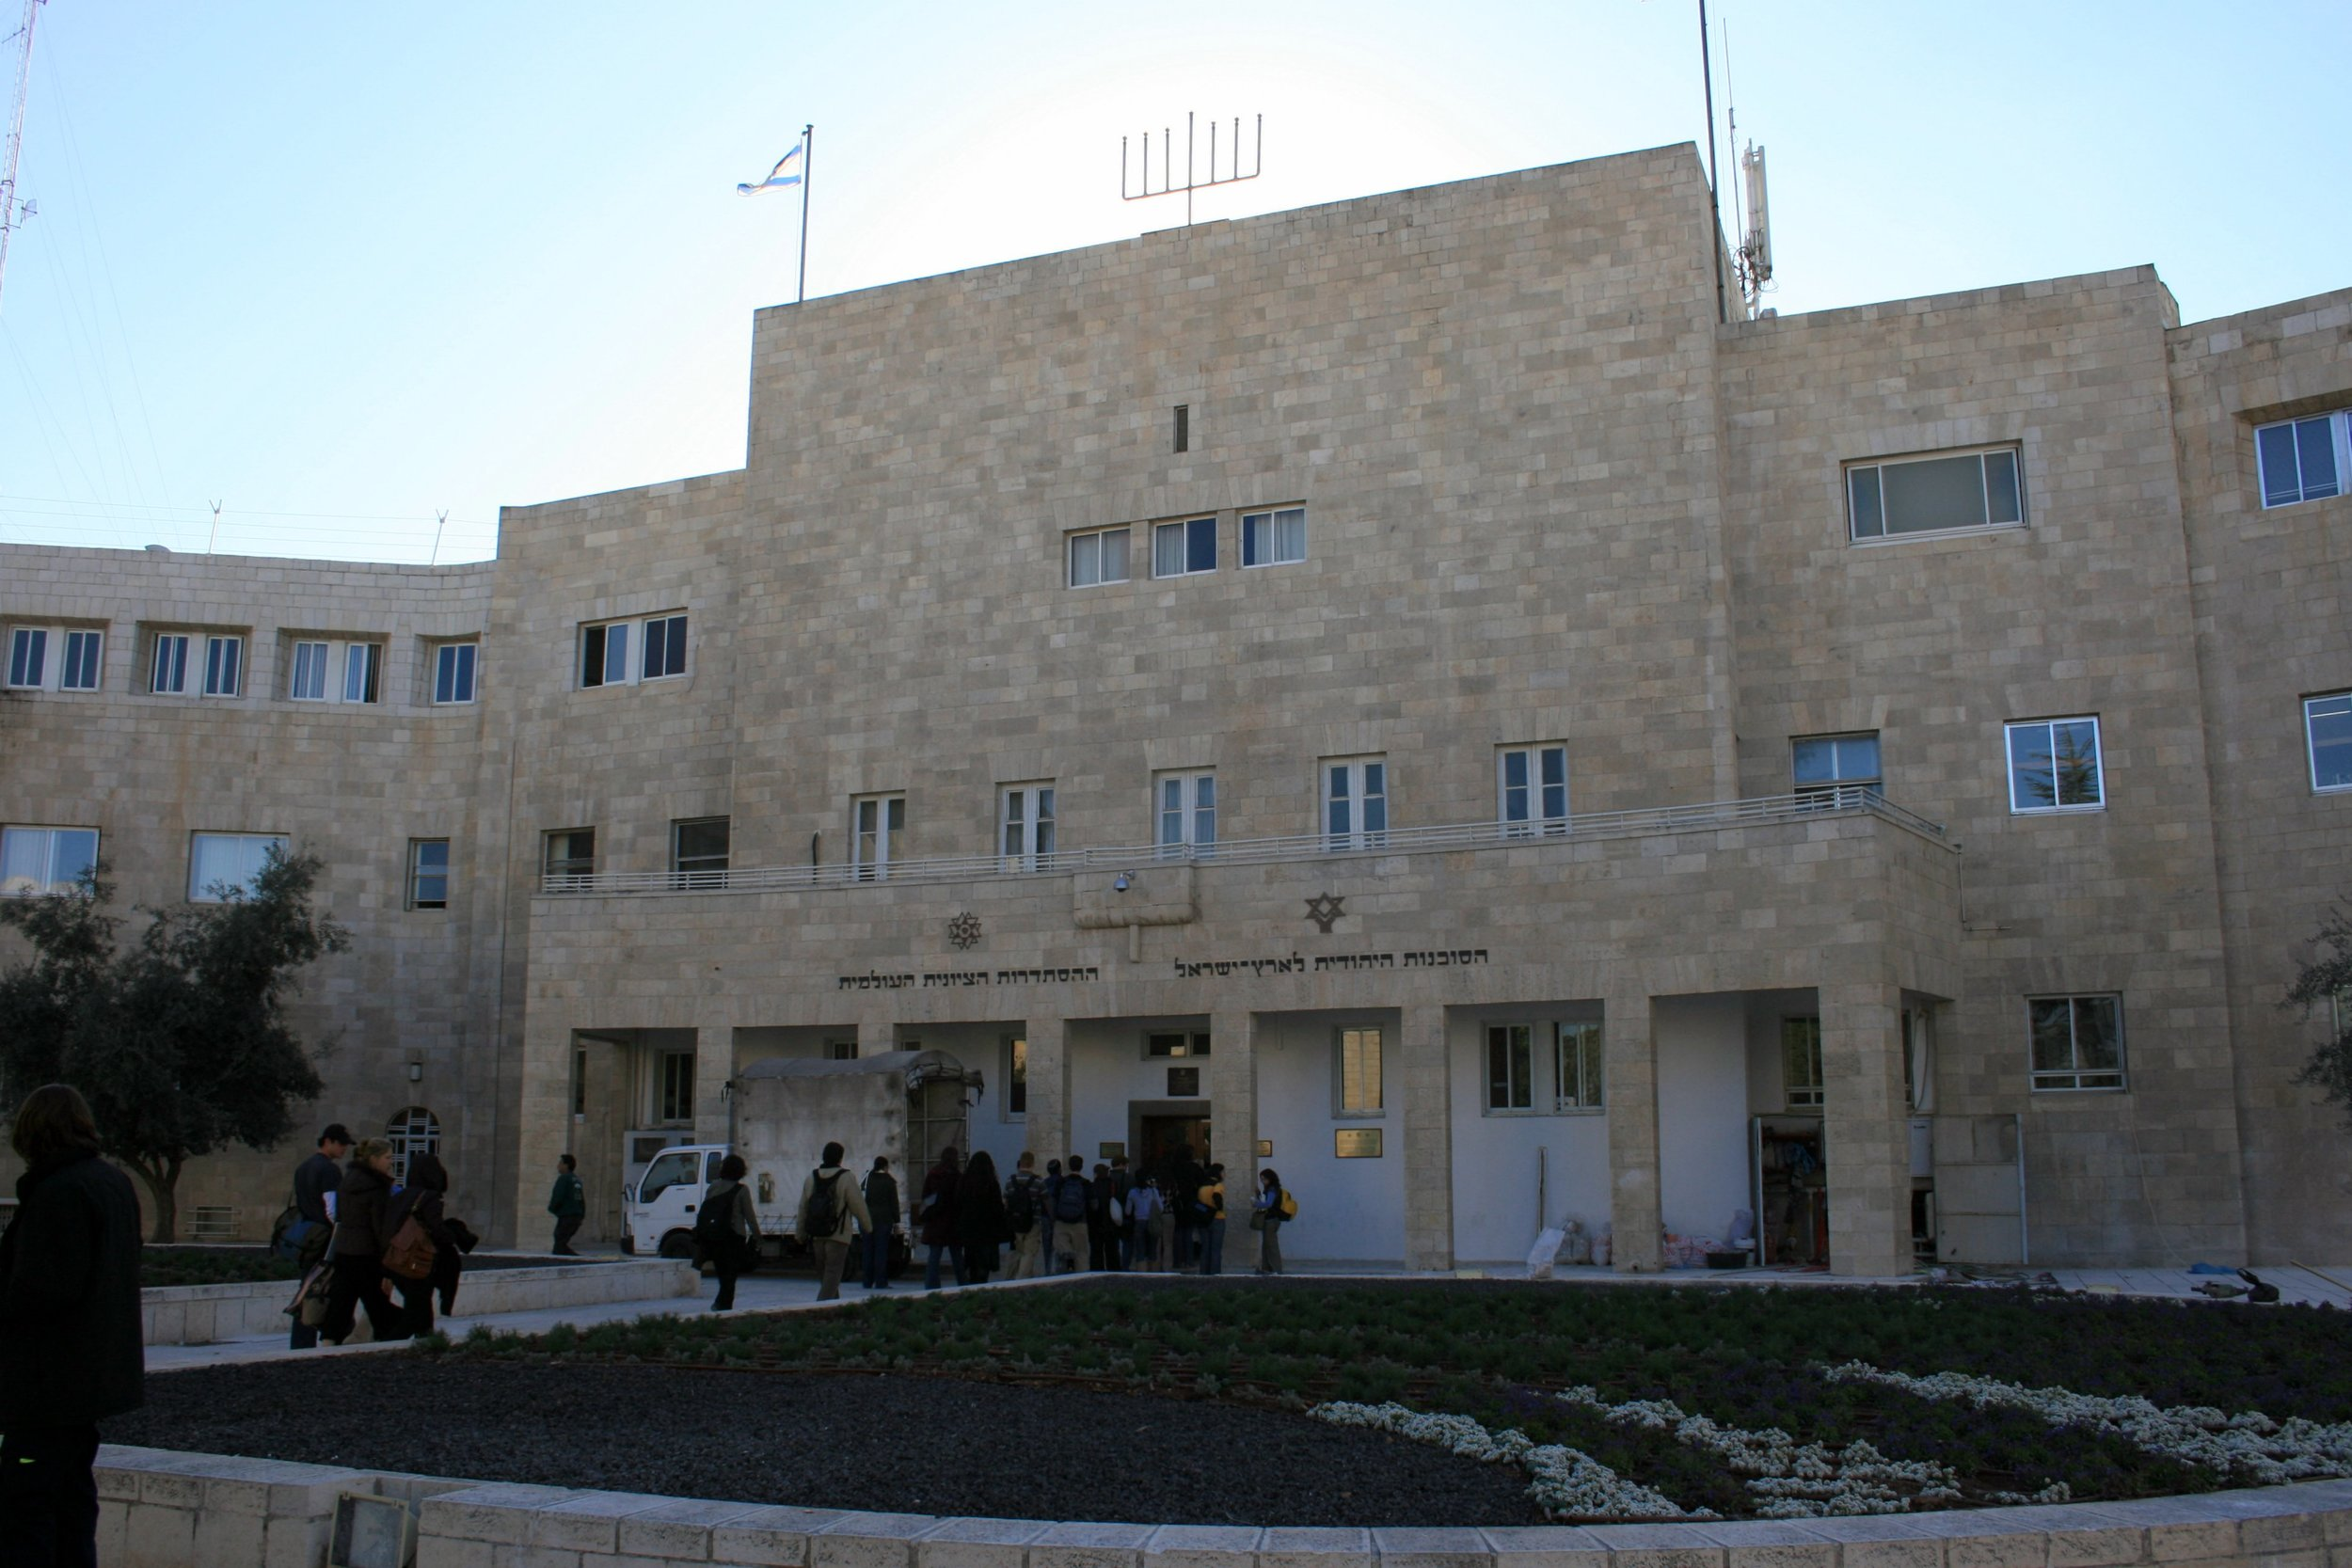 The Jewish Agency building in Jerusalem. Photo credit: Jason